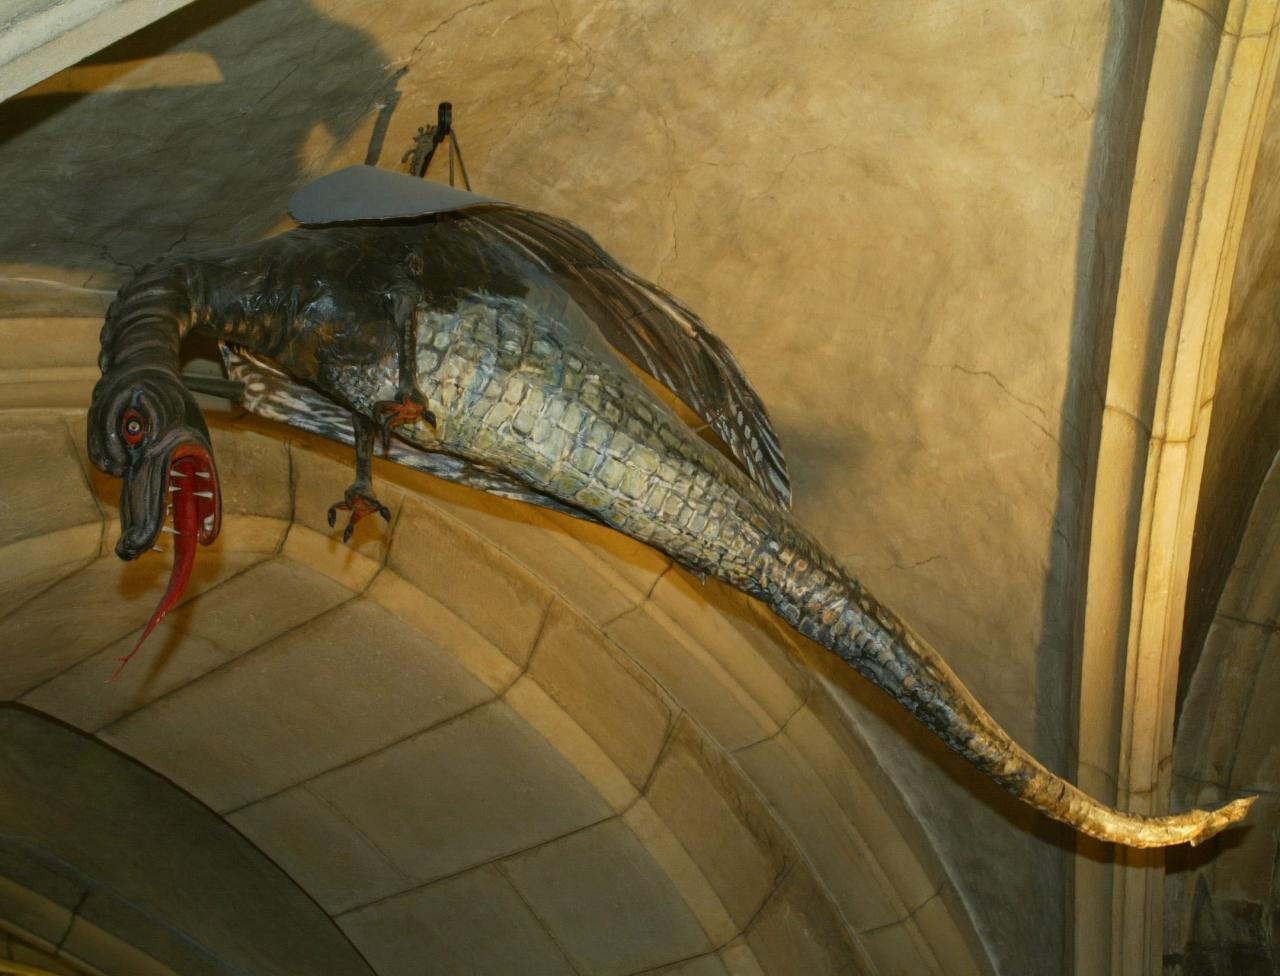 Cryptozoologie cryptozoology Metz lorraine reptile géant cryptide espèce inconnue Sablon Woippy Graoully Graouli Ichtyosaure Graouilly Graouilli Graully Saint Clément